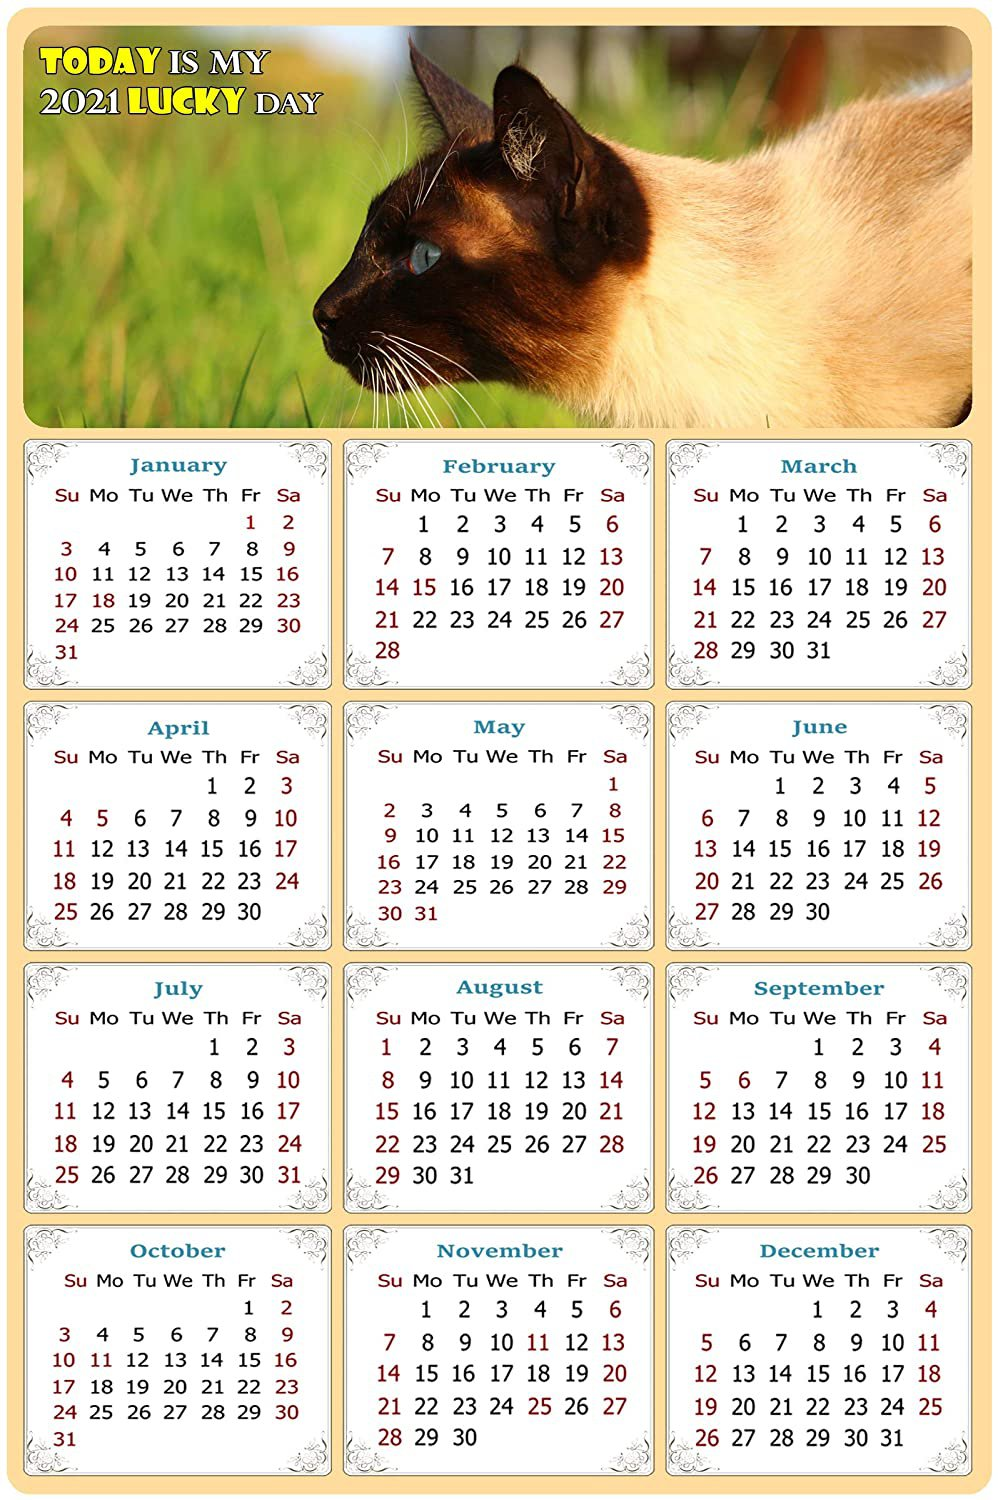 2021 Magnetic Calendar - Calendar Magnets - Today is My Lucky Day - Cat Themed 03 (5.25 x 8)